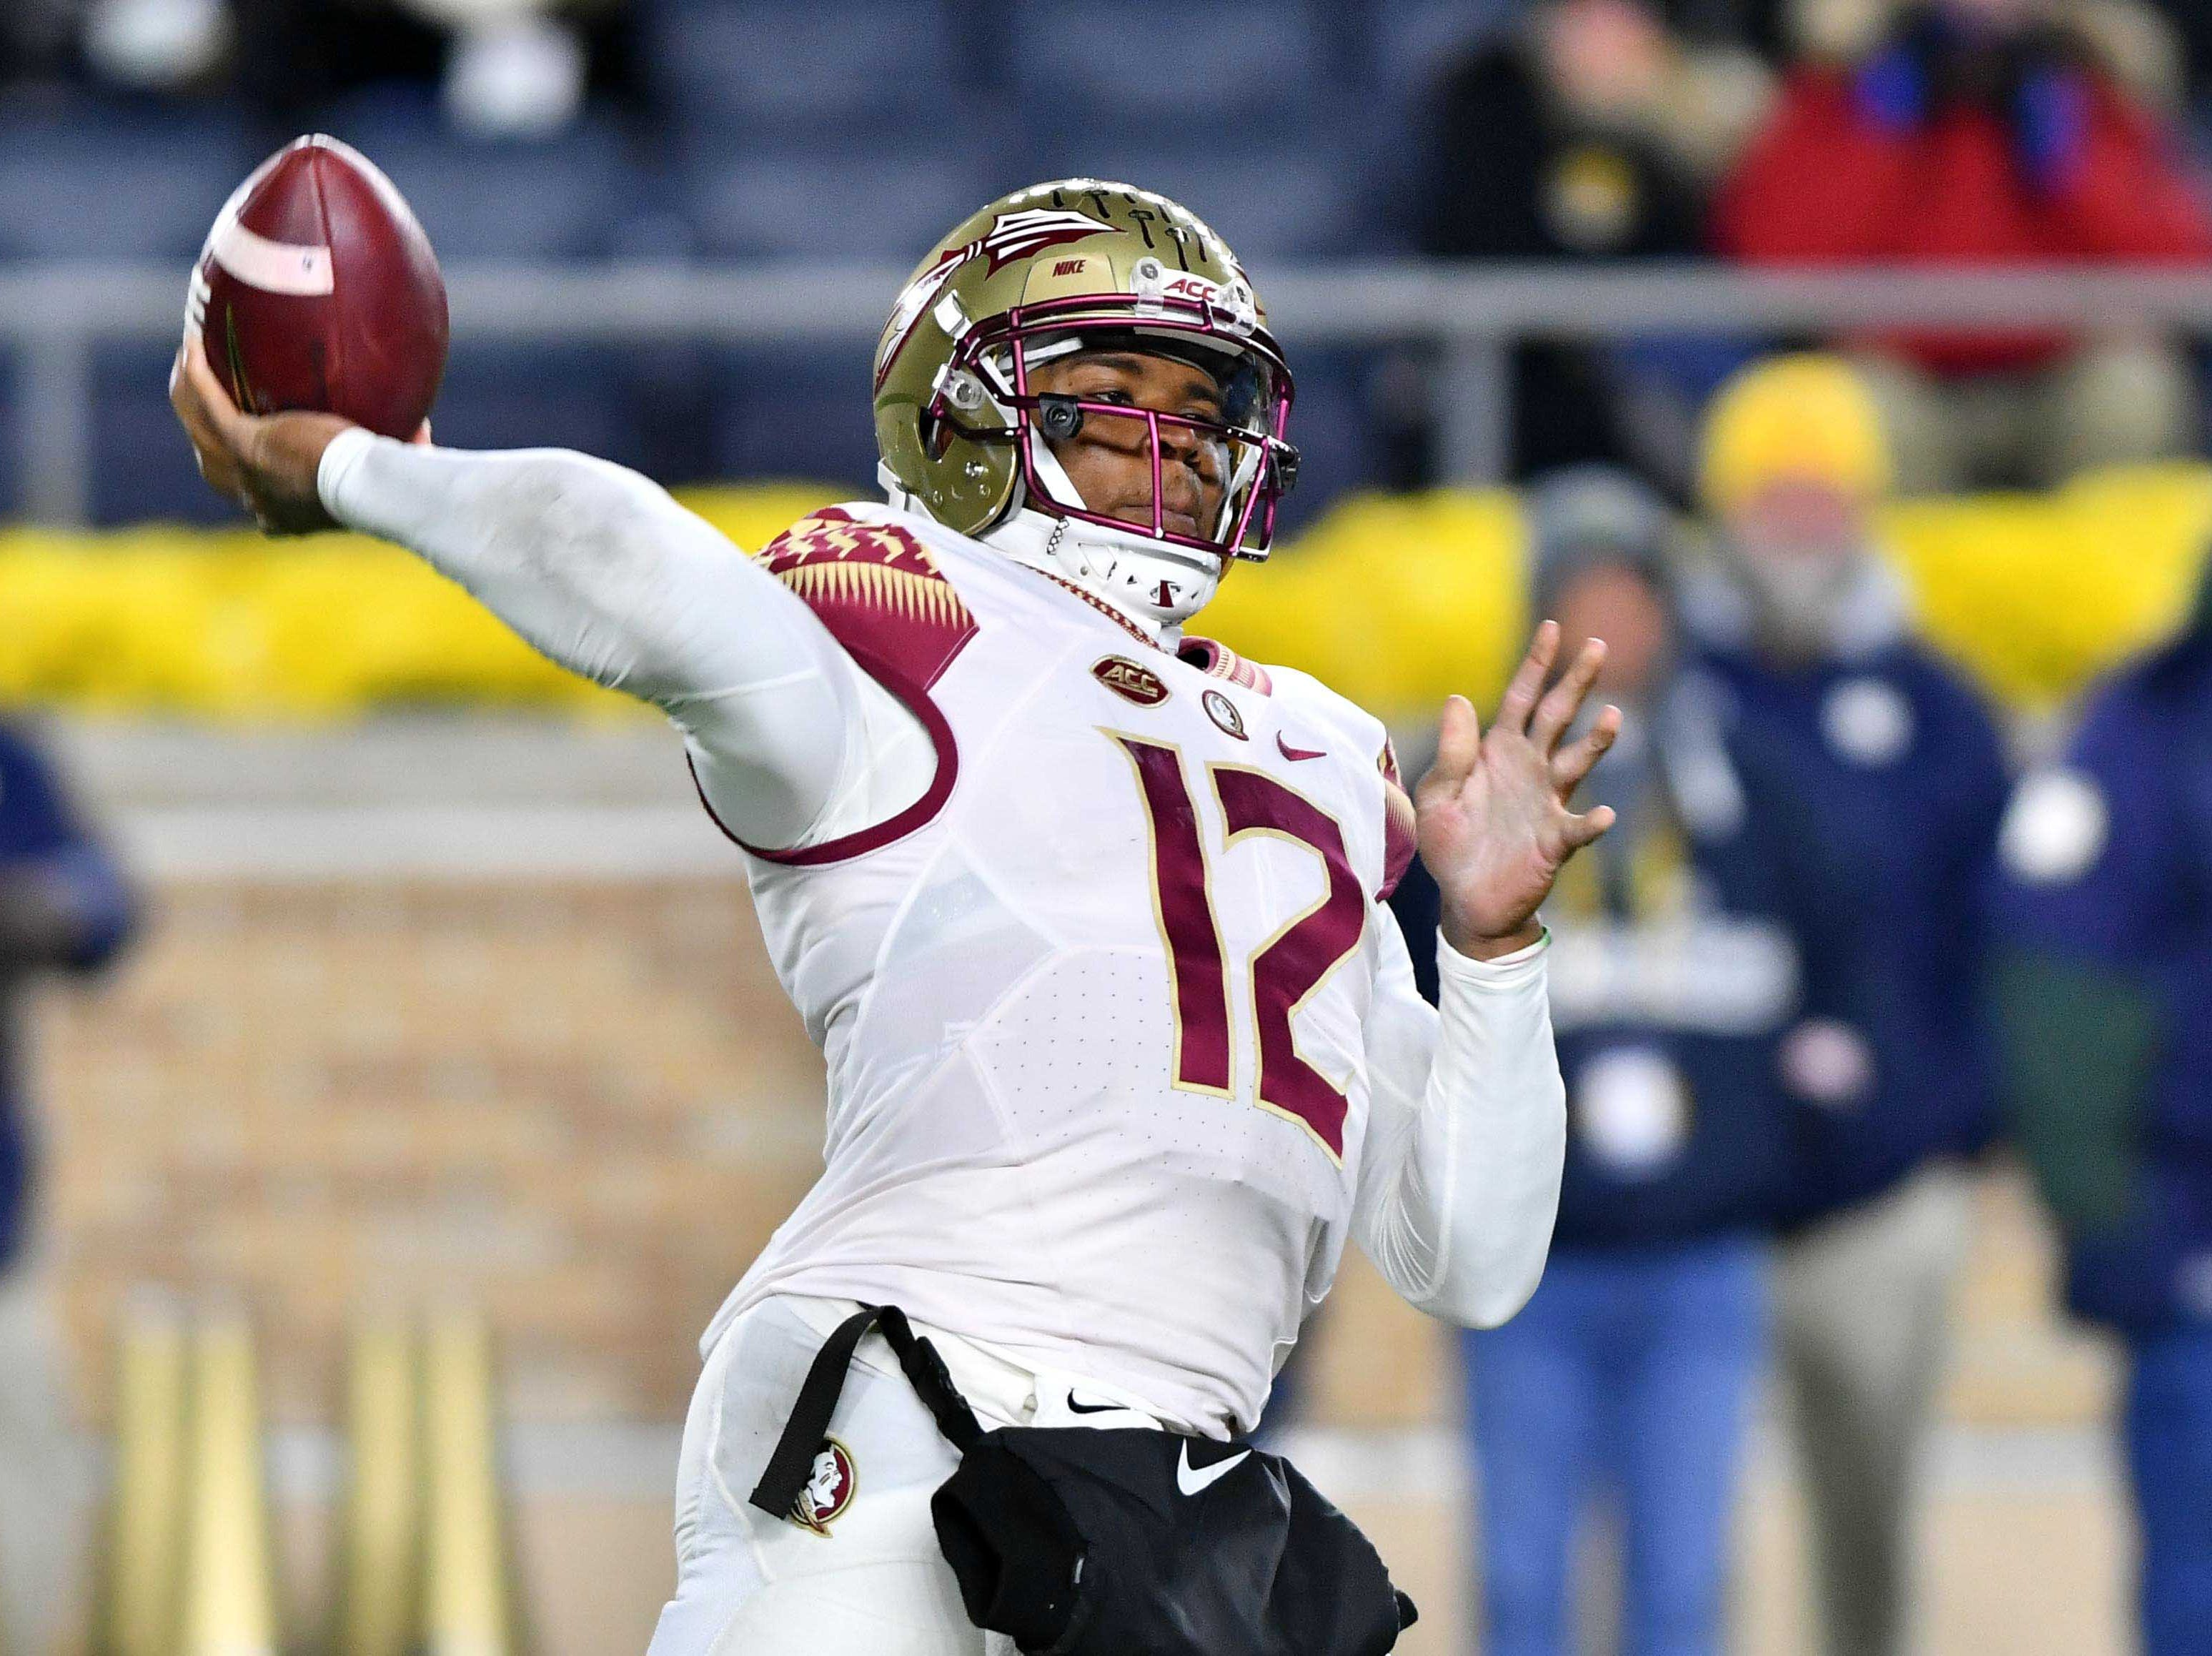 Nov 10, 2018; South Bend, IN, USA; Florida State Seminoles quarterback Deondre Francois (12) passes in the second quarter against the Notre Dame Fighting Irish at Notre Dame Stadium. Mandatory Credit: Matt Cashore-USA TODAY Sports